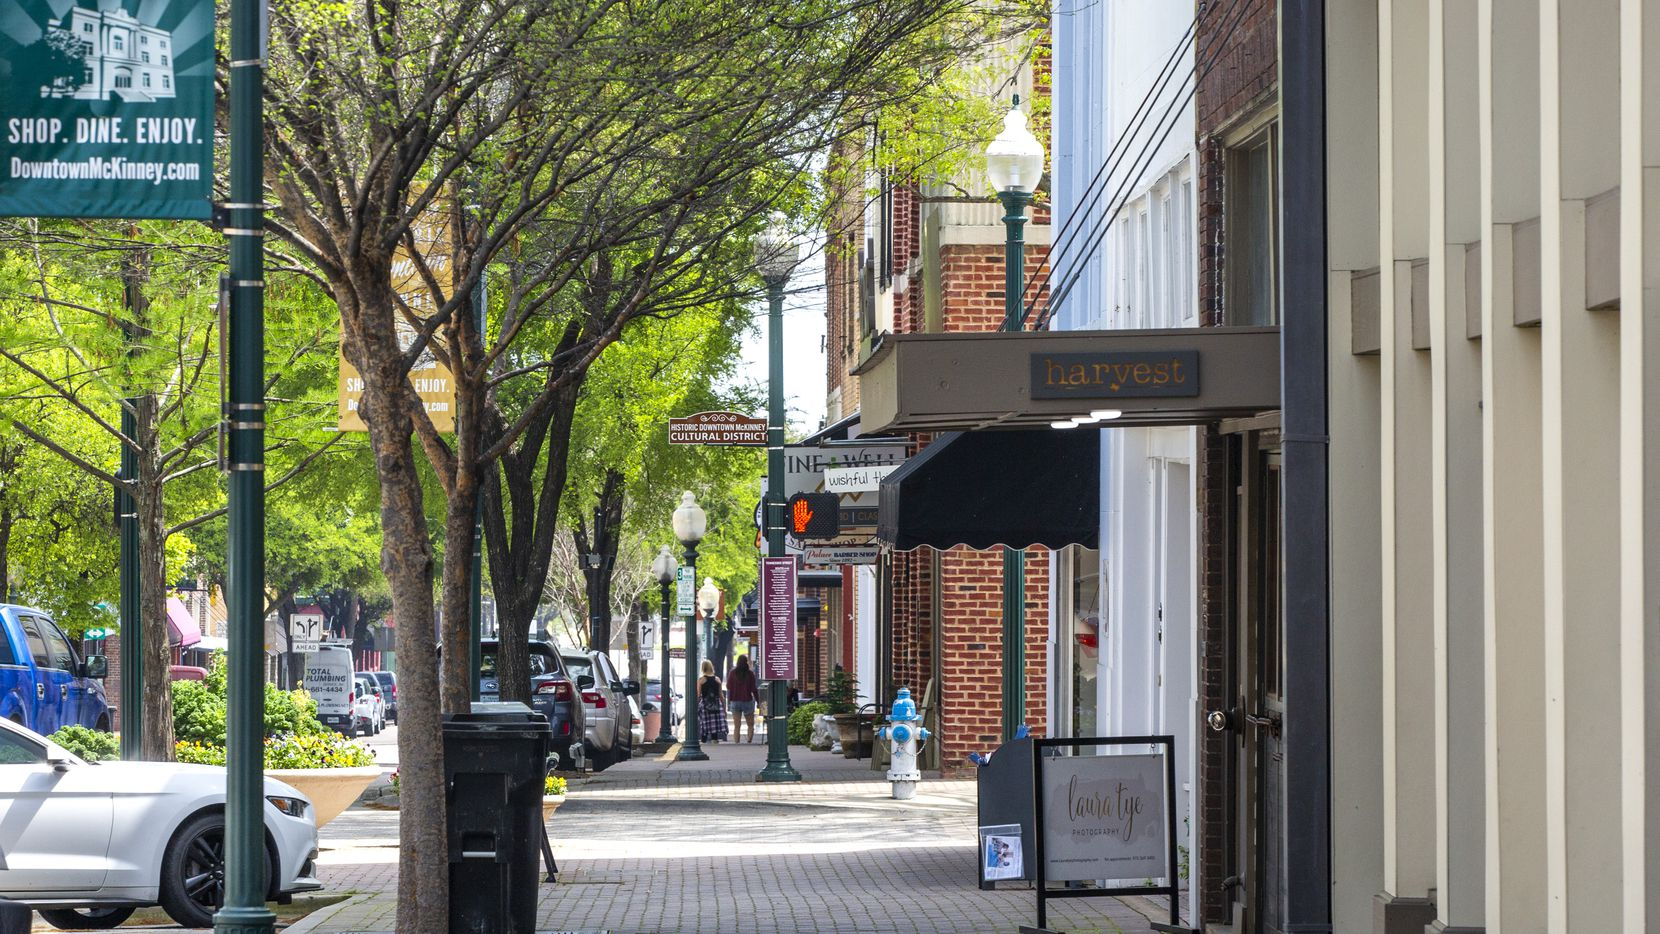 Historic Downtown McKinney plays host to a Wine and Music Festival this weekend.